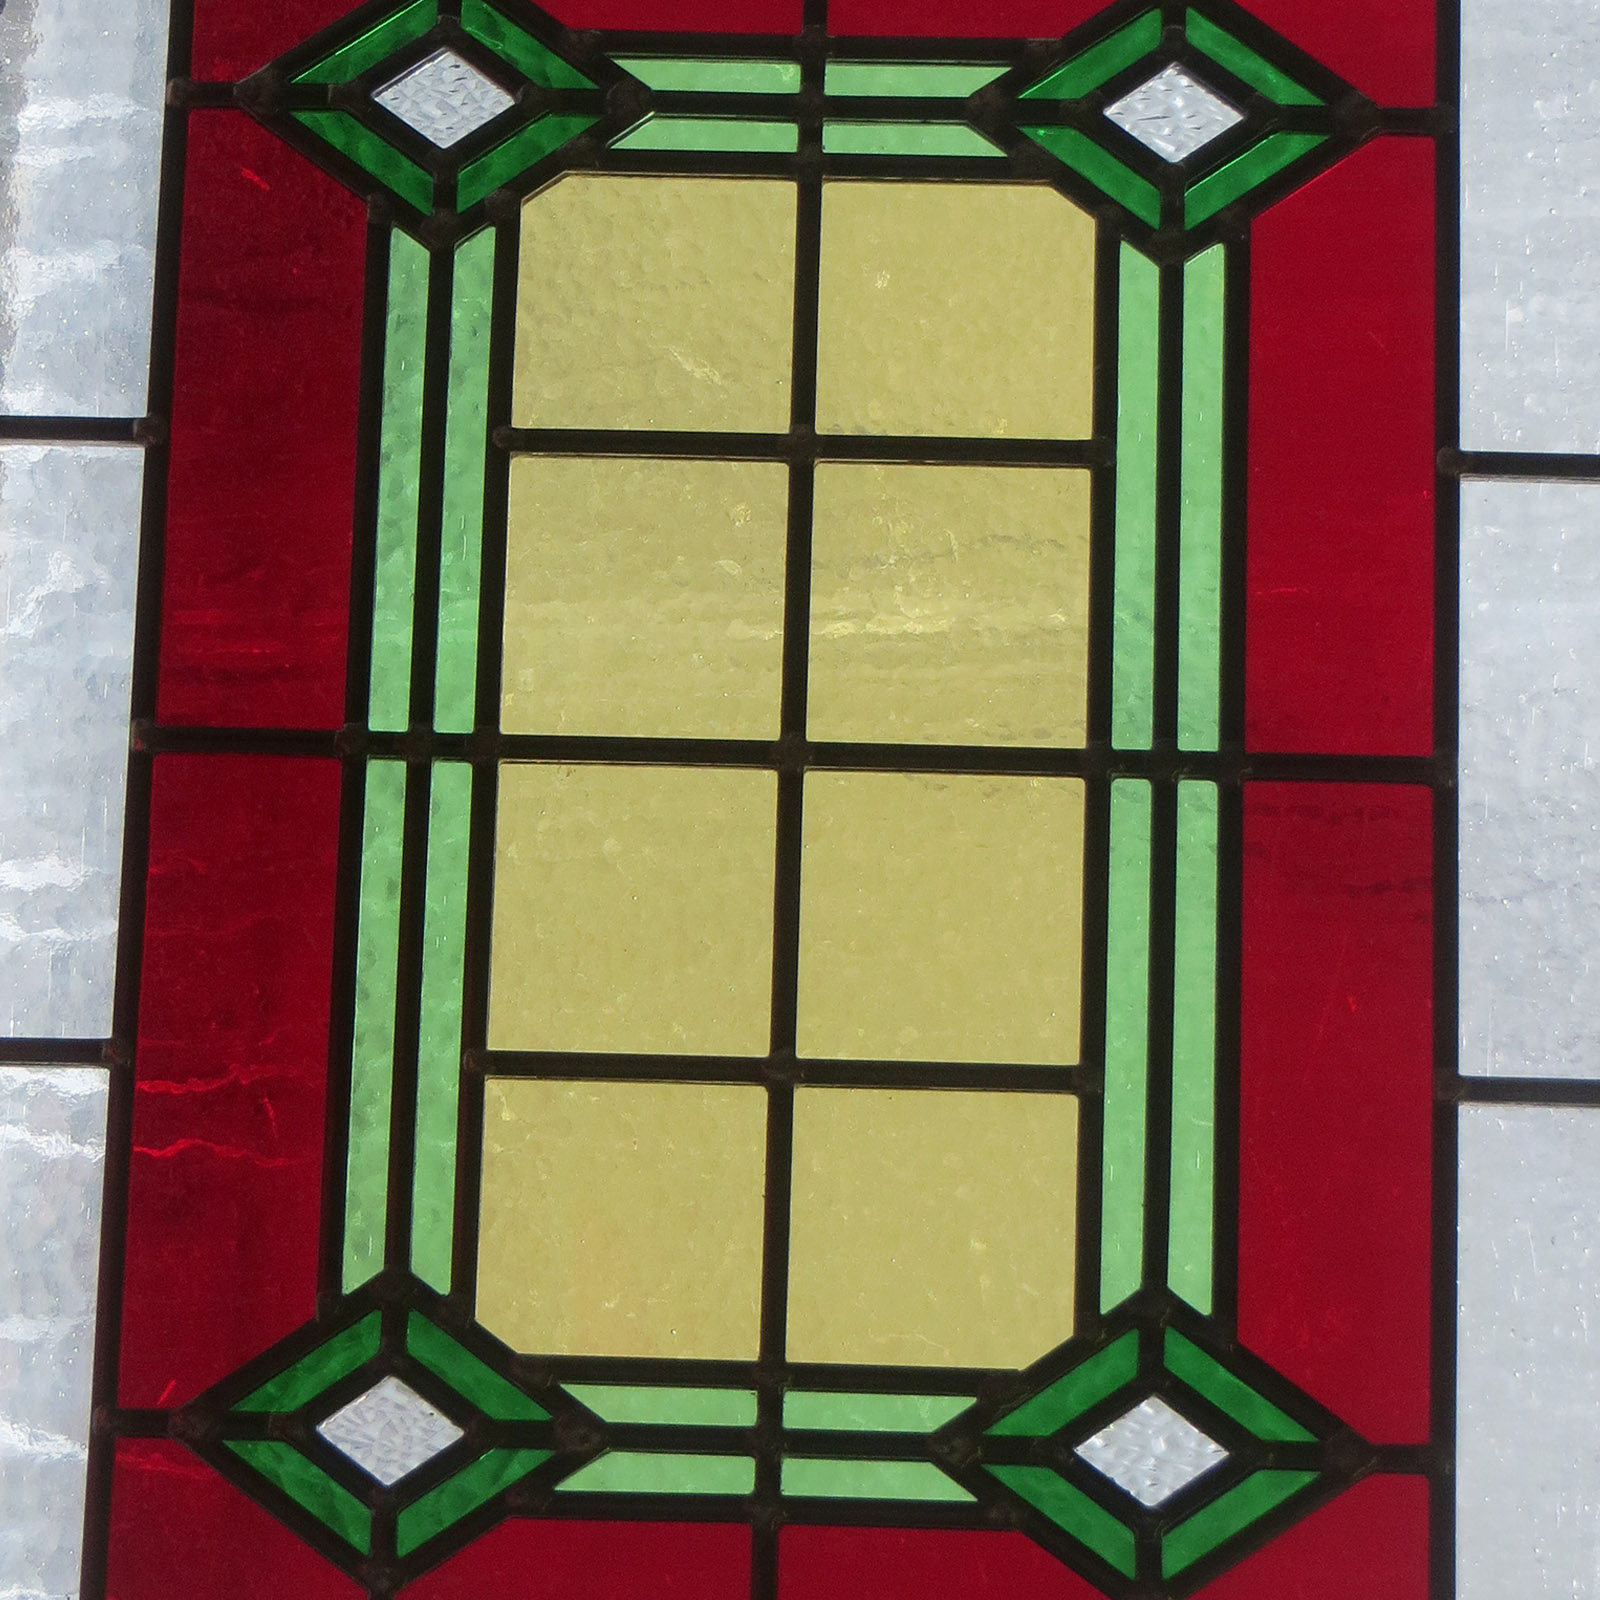 Bespoke 1930s art deco stained glass from period home style for 1930s stained glass window designs